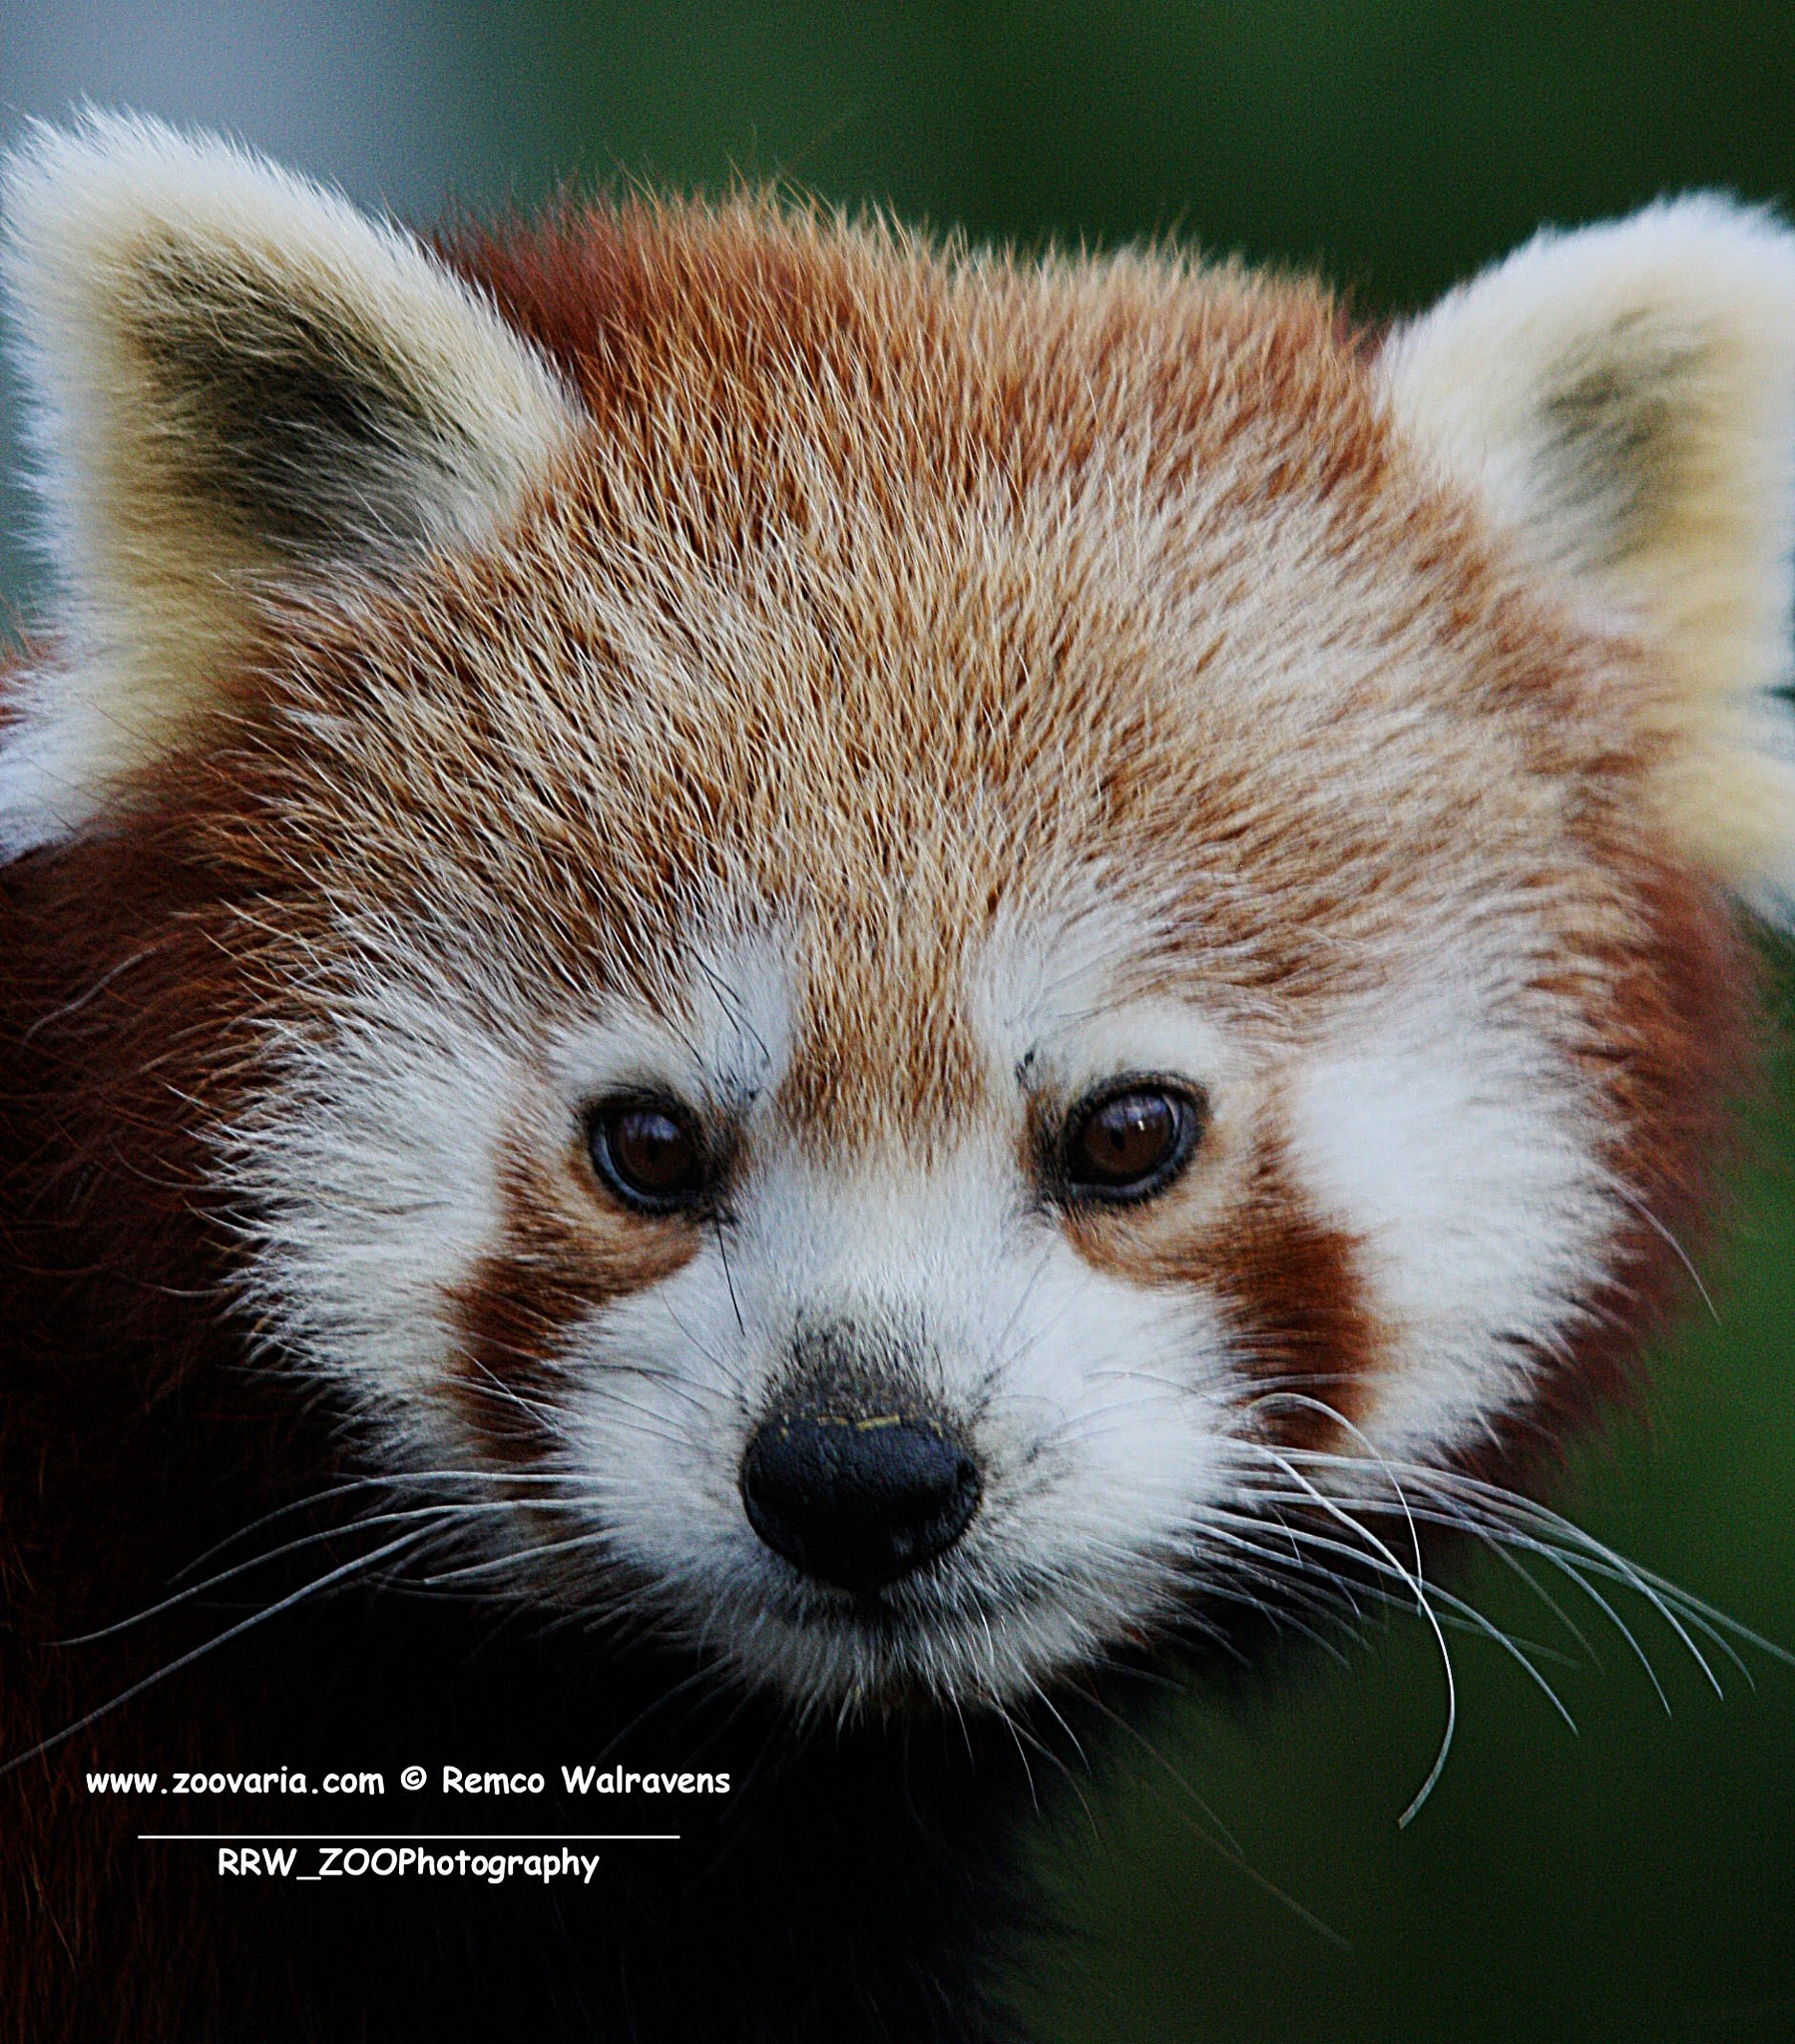 Red panda by Remco Walravens